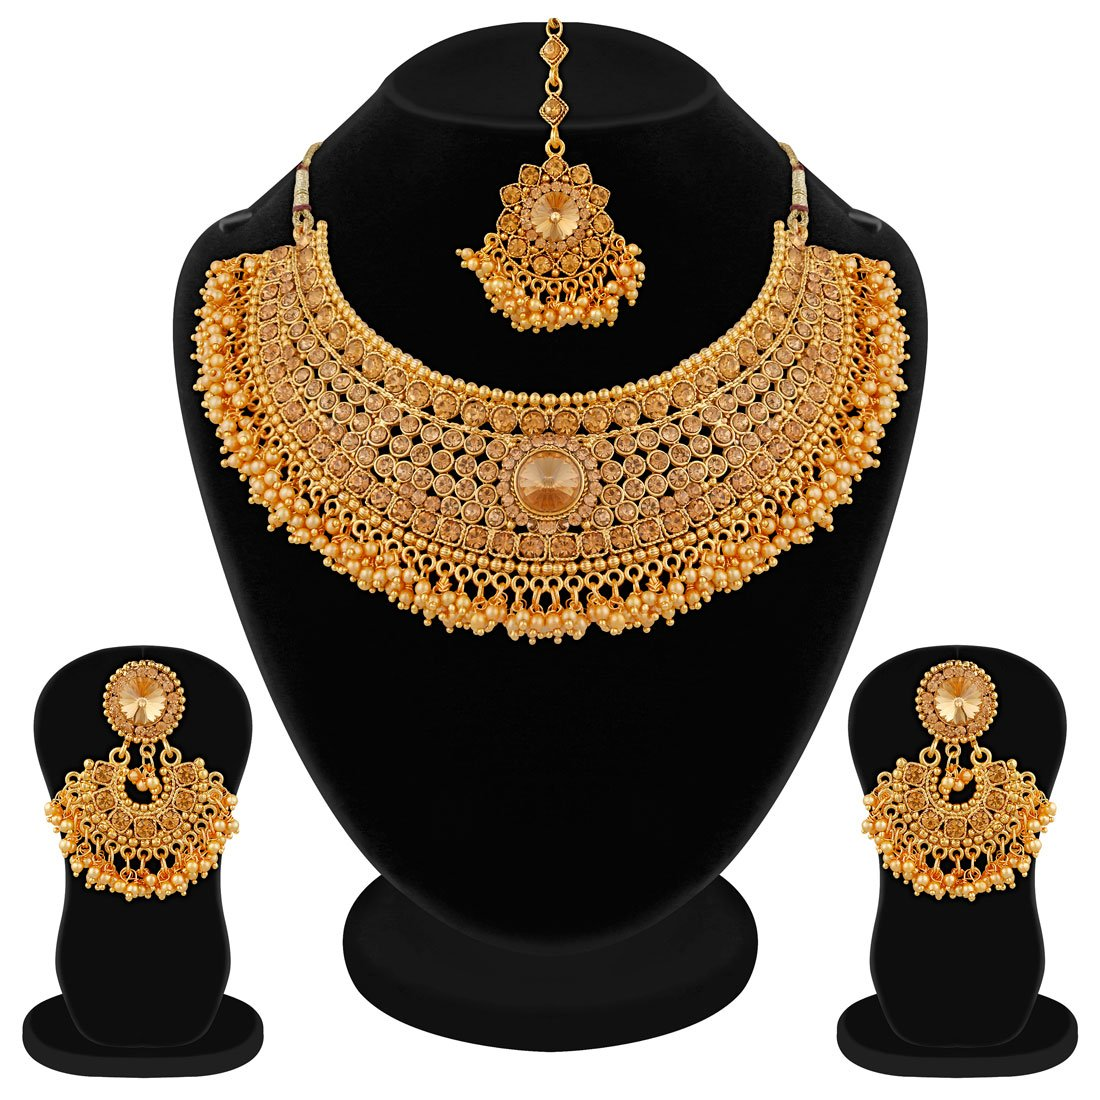 Apara Bridal Gold Plated Pearl LCT Stones Necklace Set